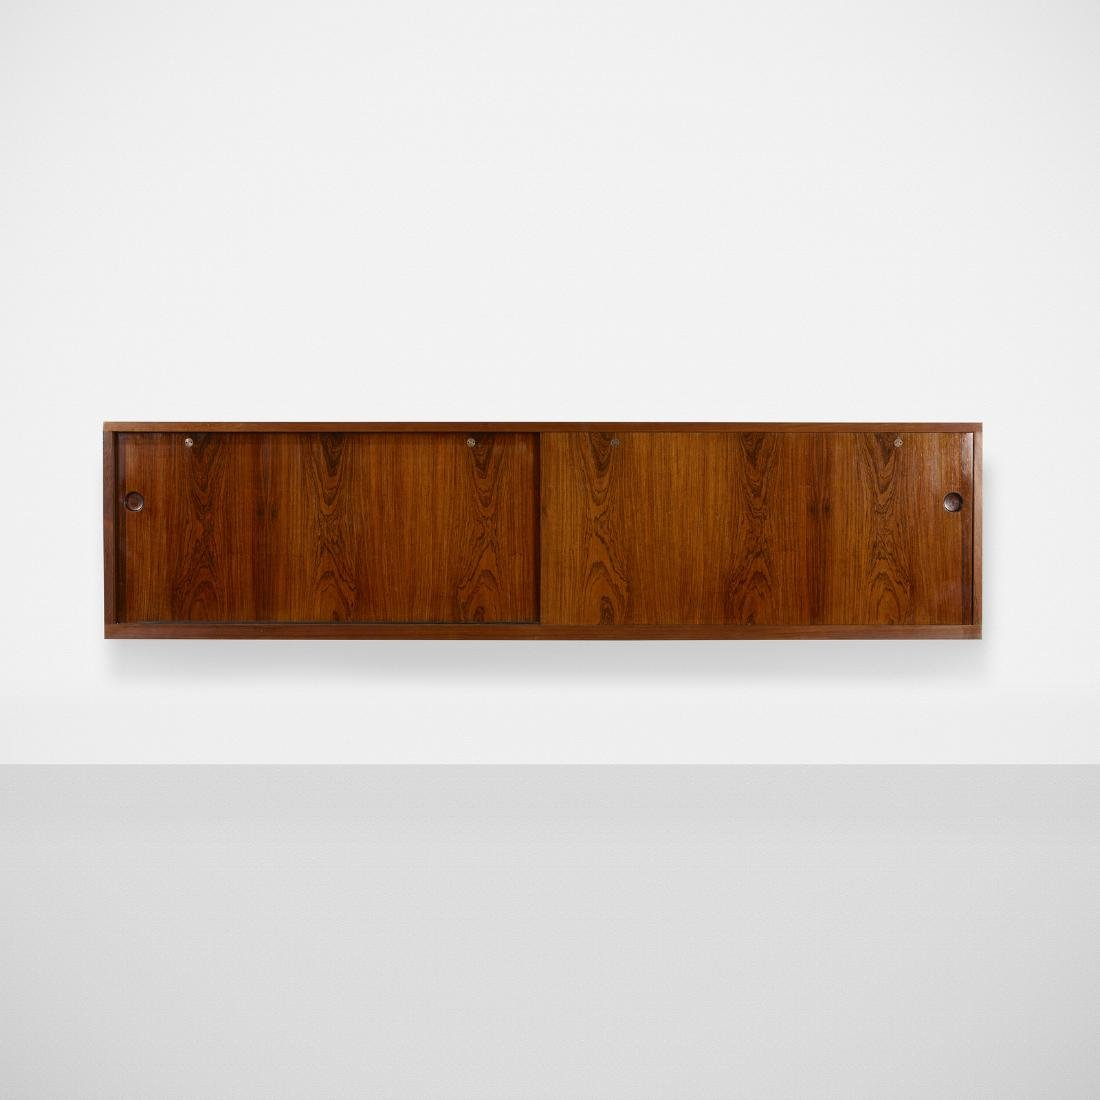 Hans J. Wegner, custom wall-mounted cabinet - 2